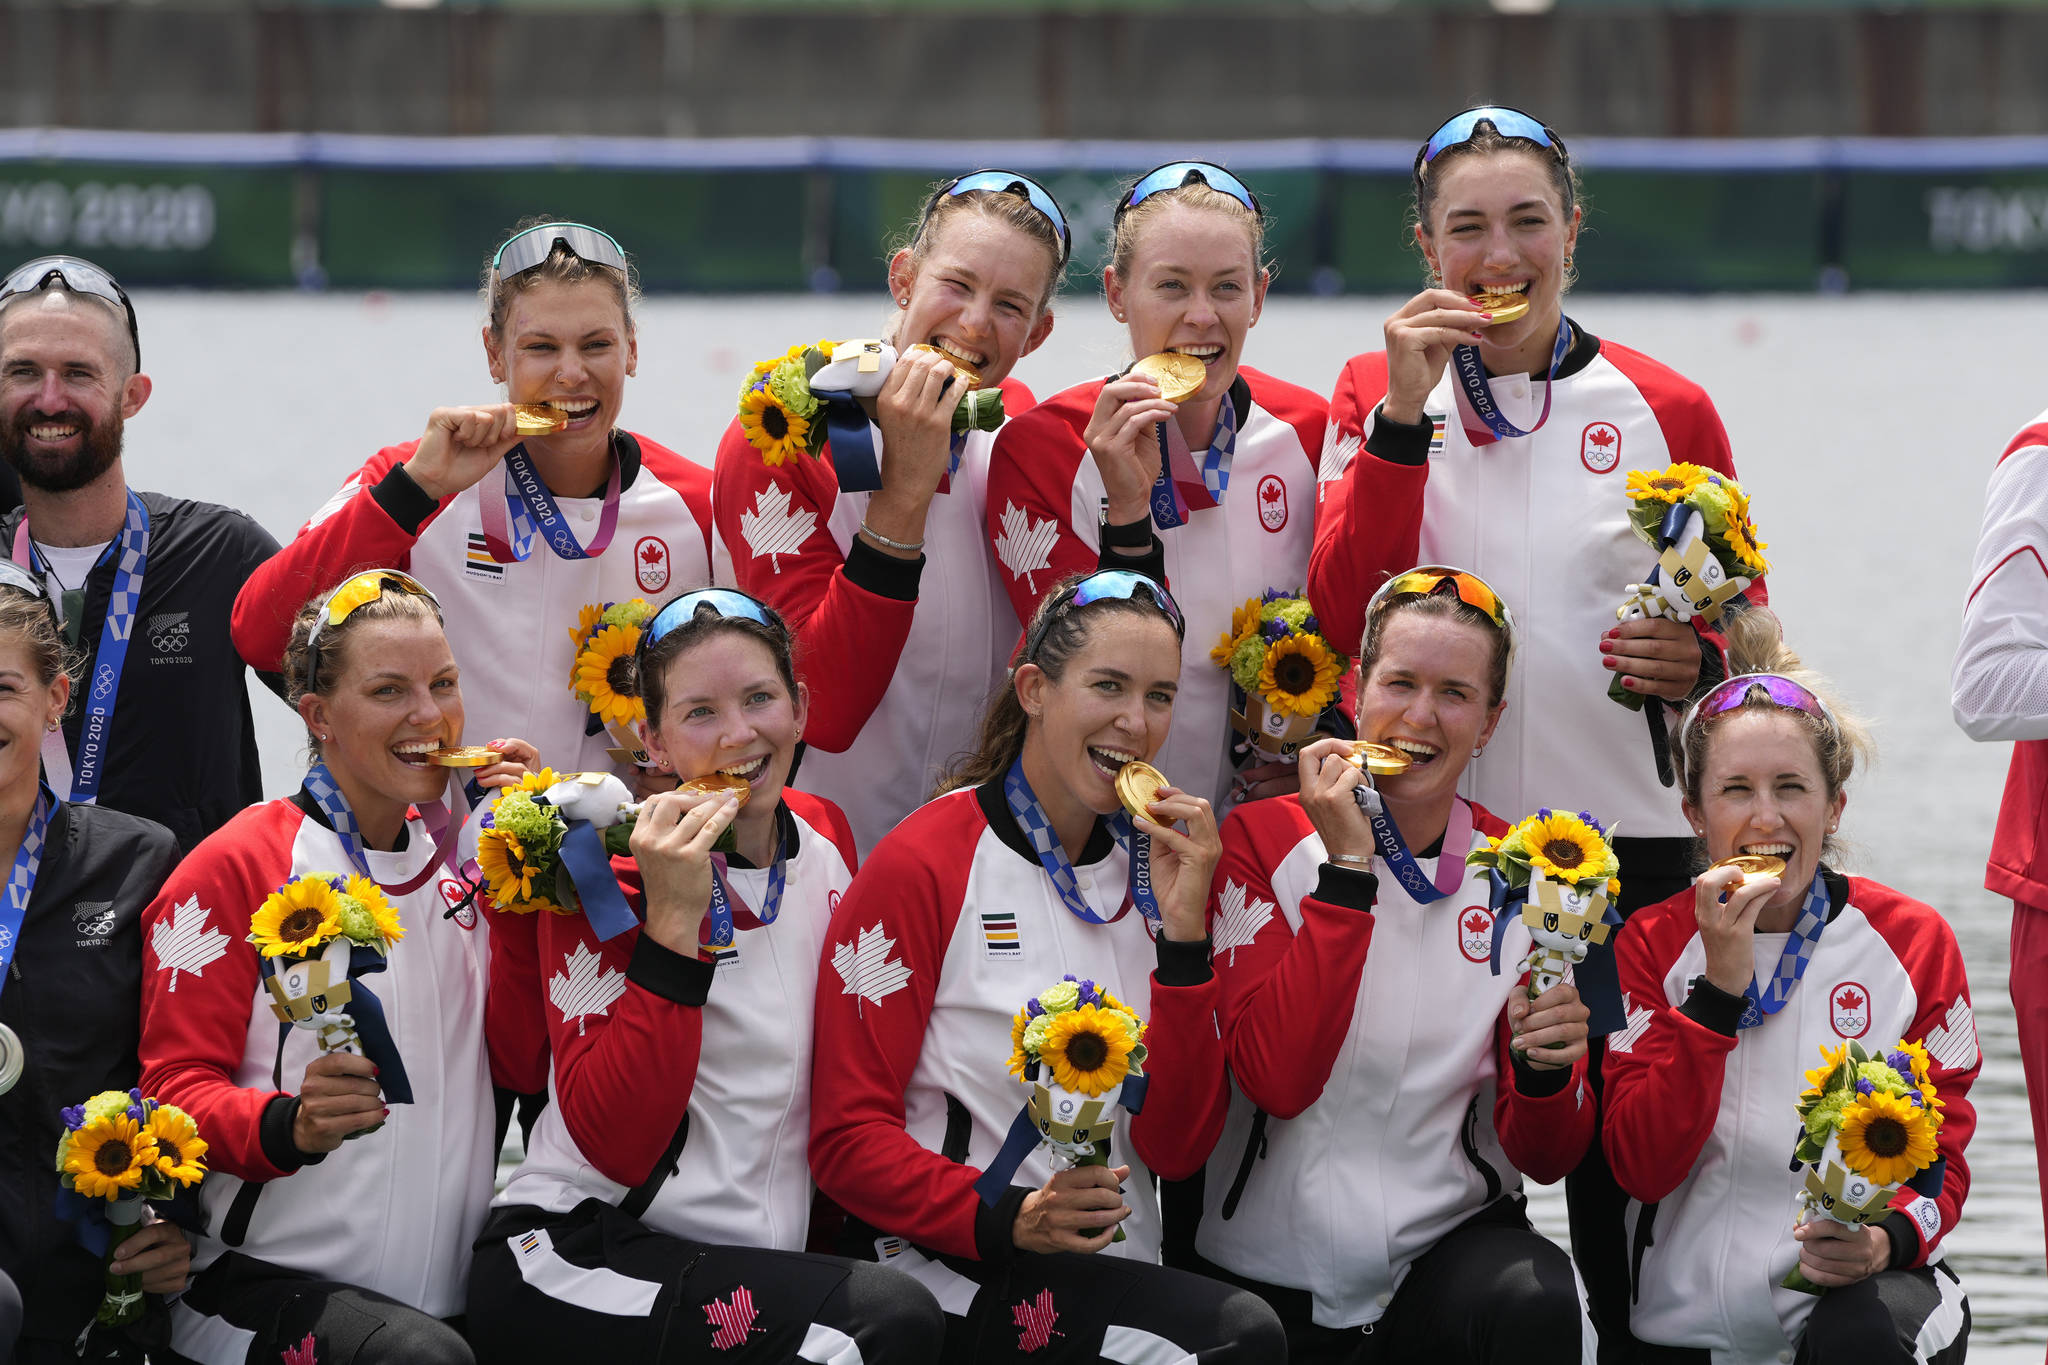 Gold medalists Lisa Roman, Kasia Gruchalla-Wesierski, Christine Roper, Andrea Proske, Susanne Grainger, Madison Mailey, Sydney Payne, Avalon Wasteneys and Kristen Kit of Canada pose during the medal ceremony for the women's rowing eight final lat the 2020 Summer Olympics, Friday, July 30, 2021, in Tokyo, Japan. (AP Photo/Lee Jin-man)